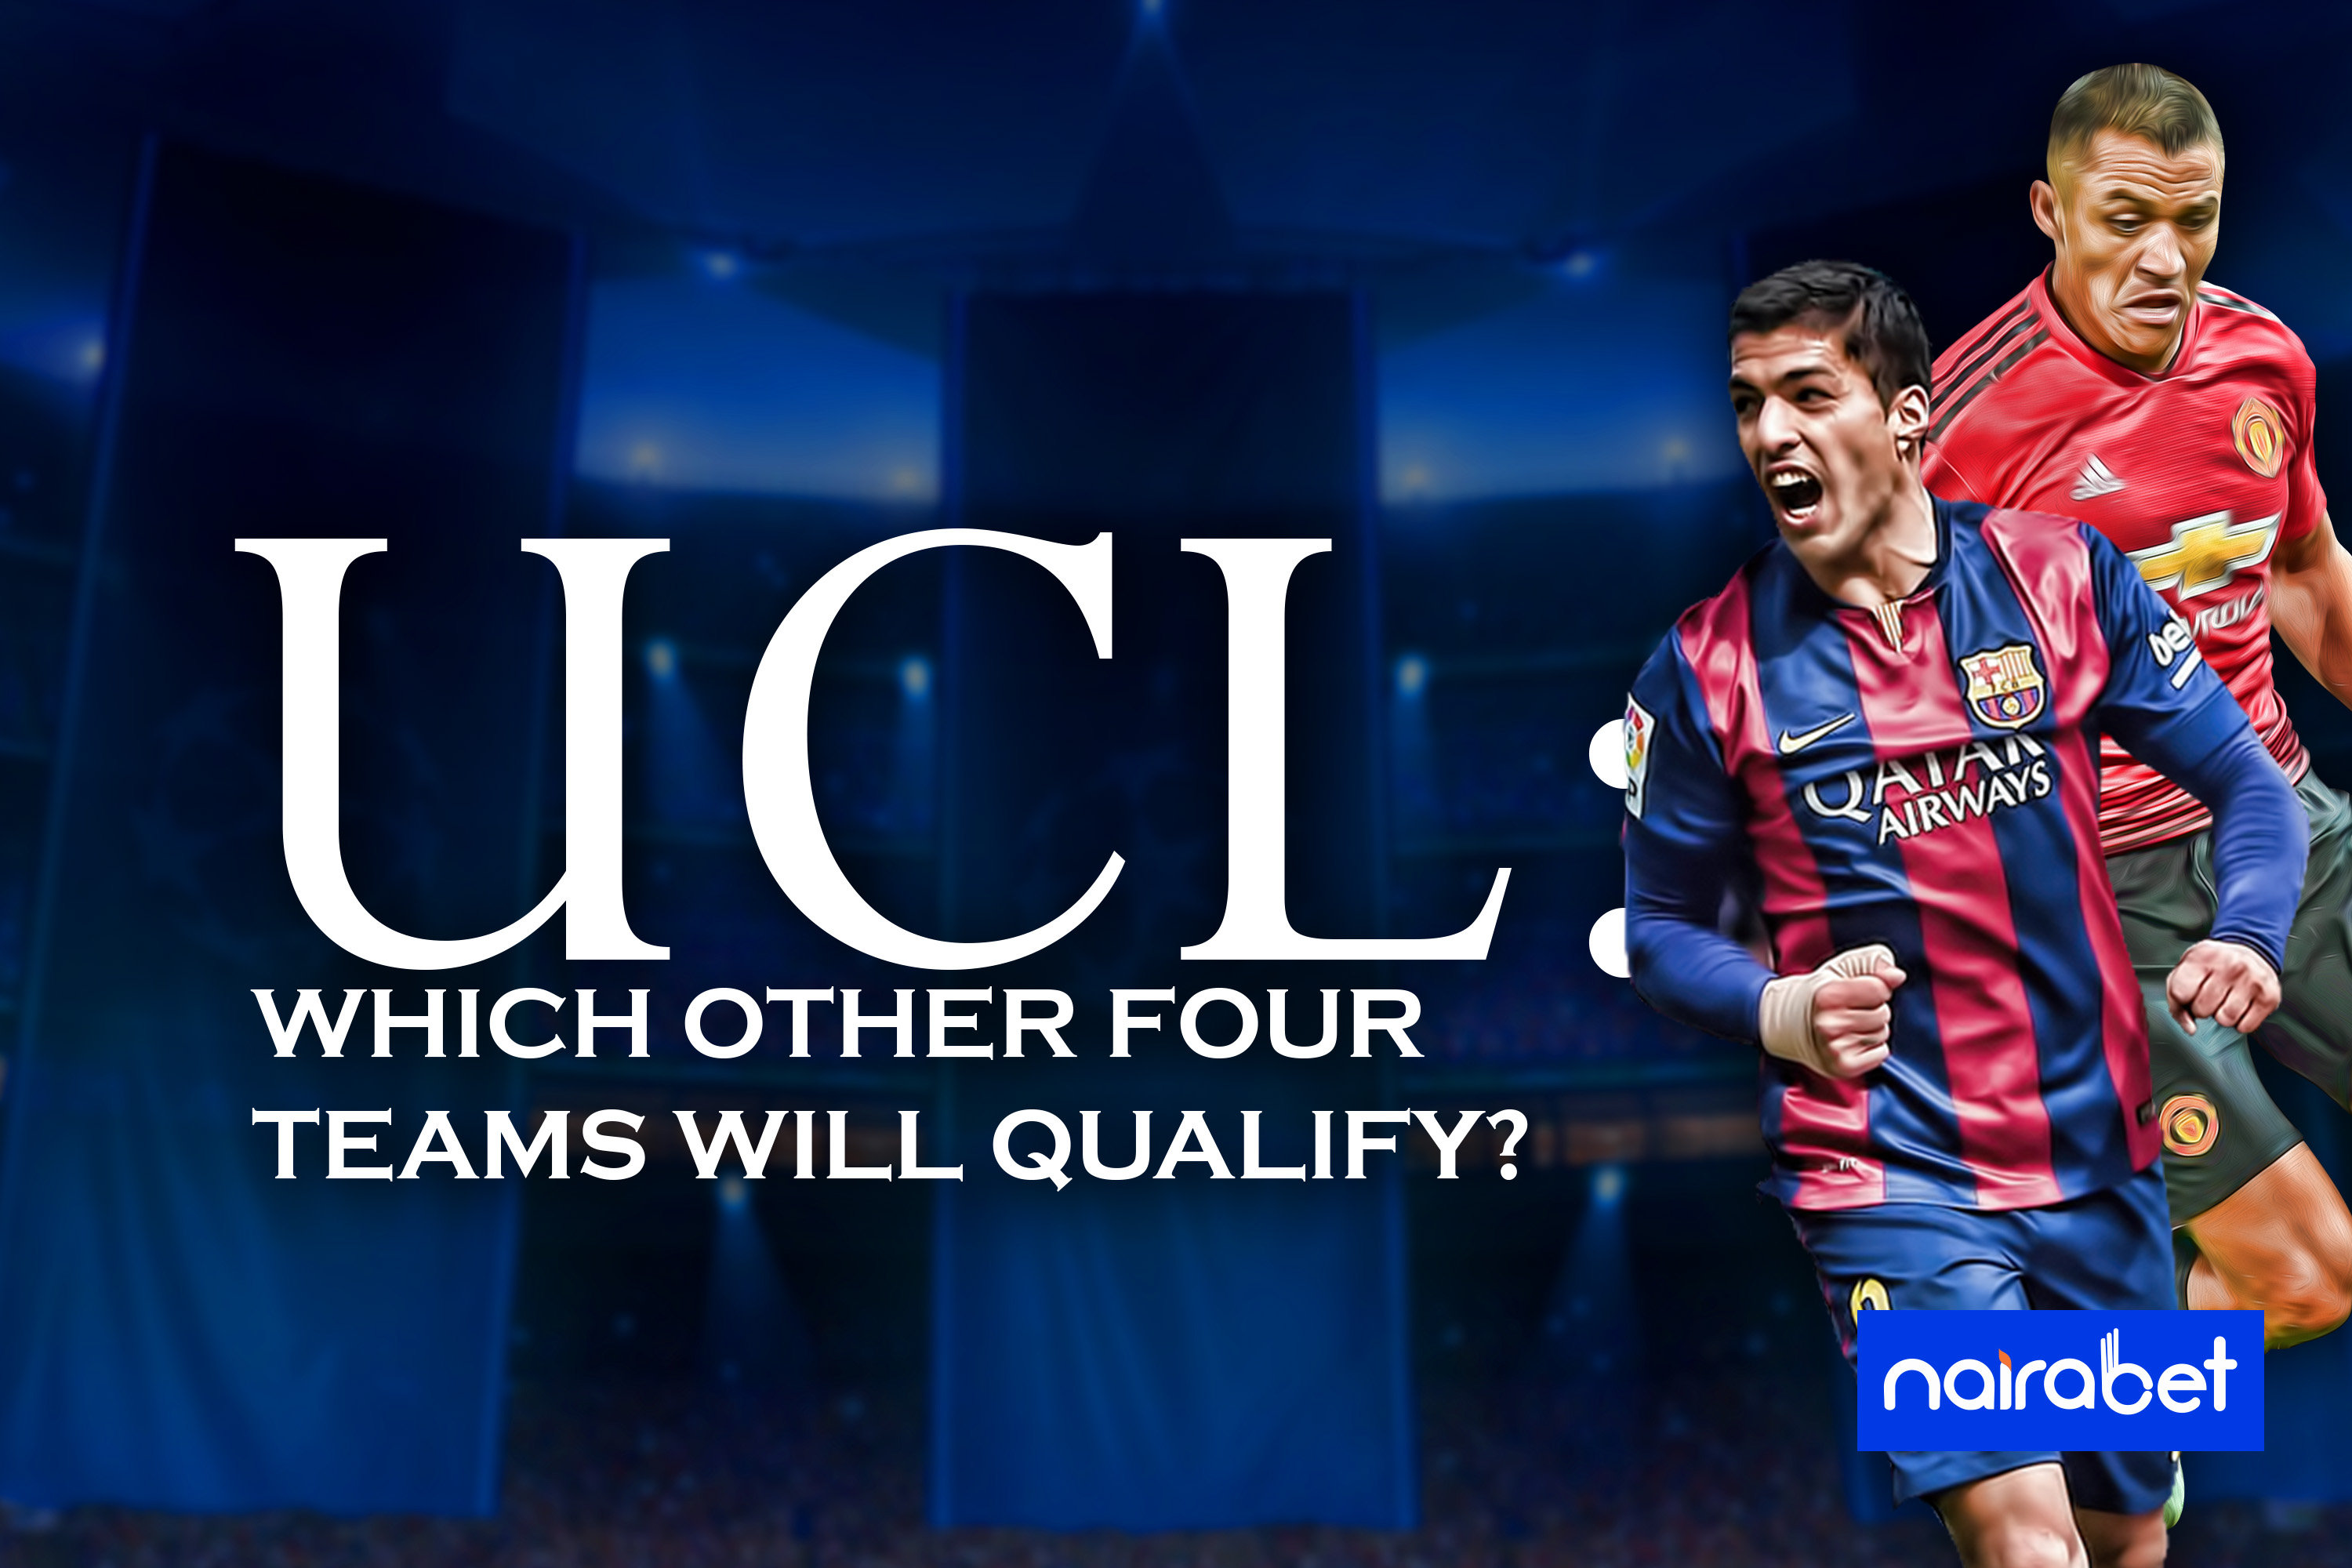 ucl qualifications